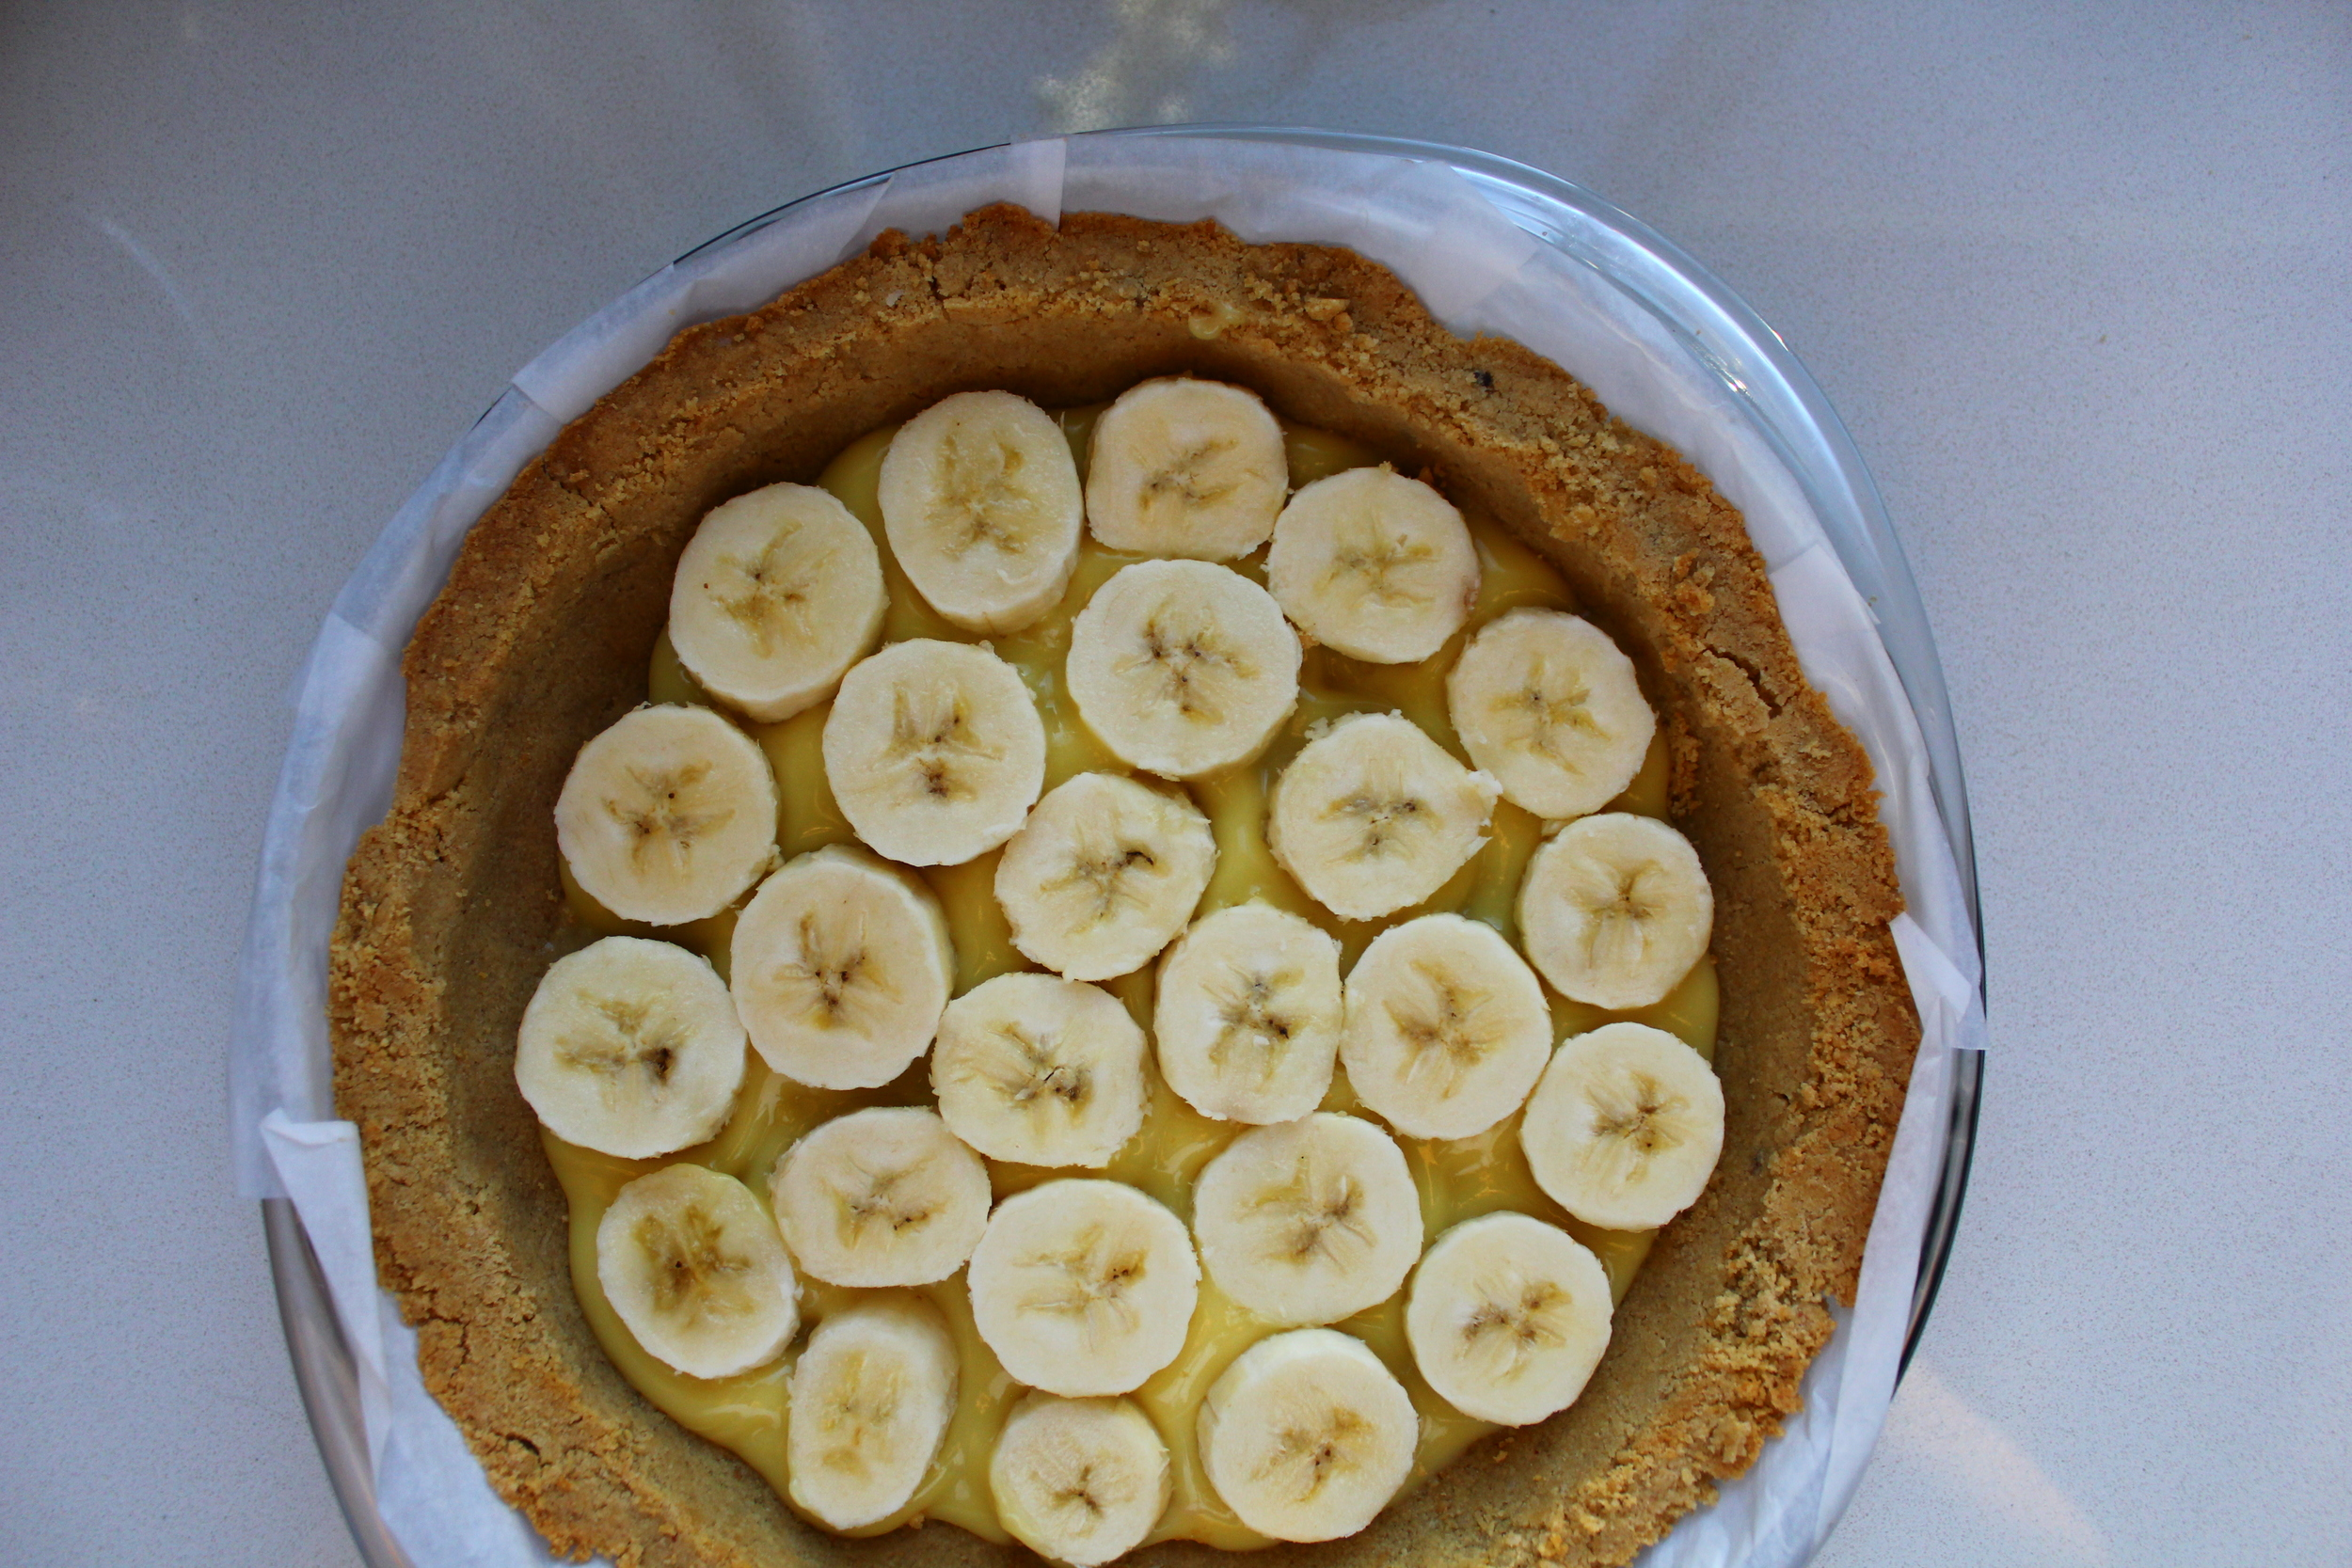 SALTED BOURBON BANANA CREAM PIE